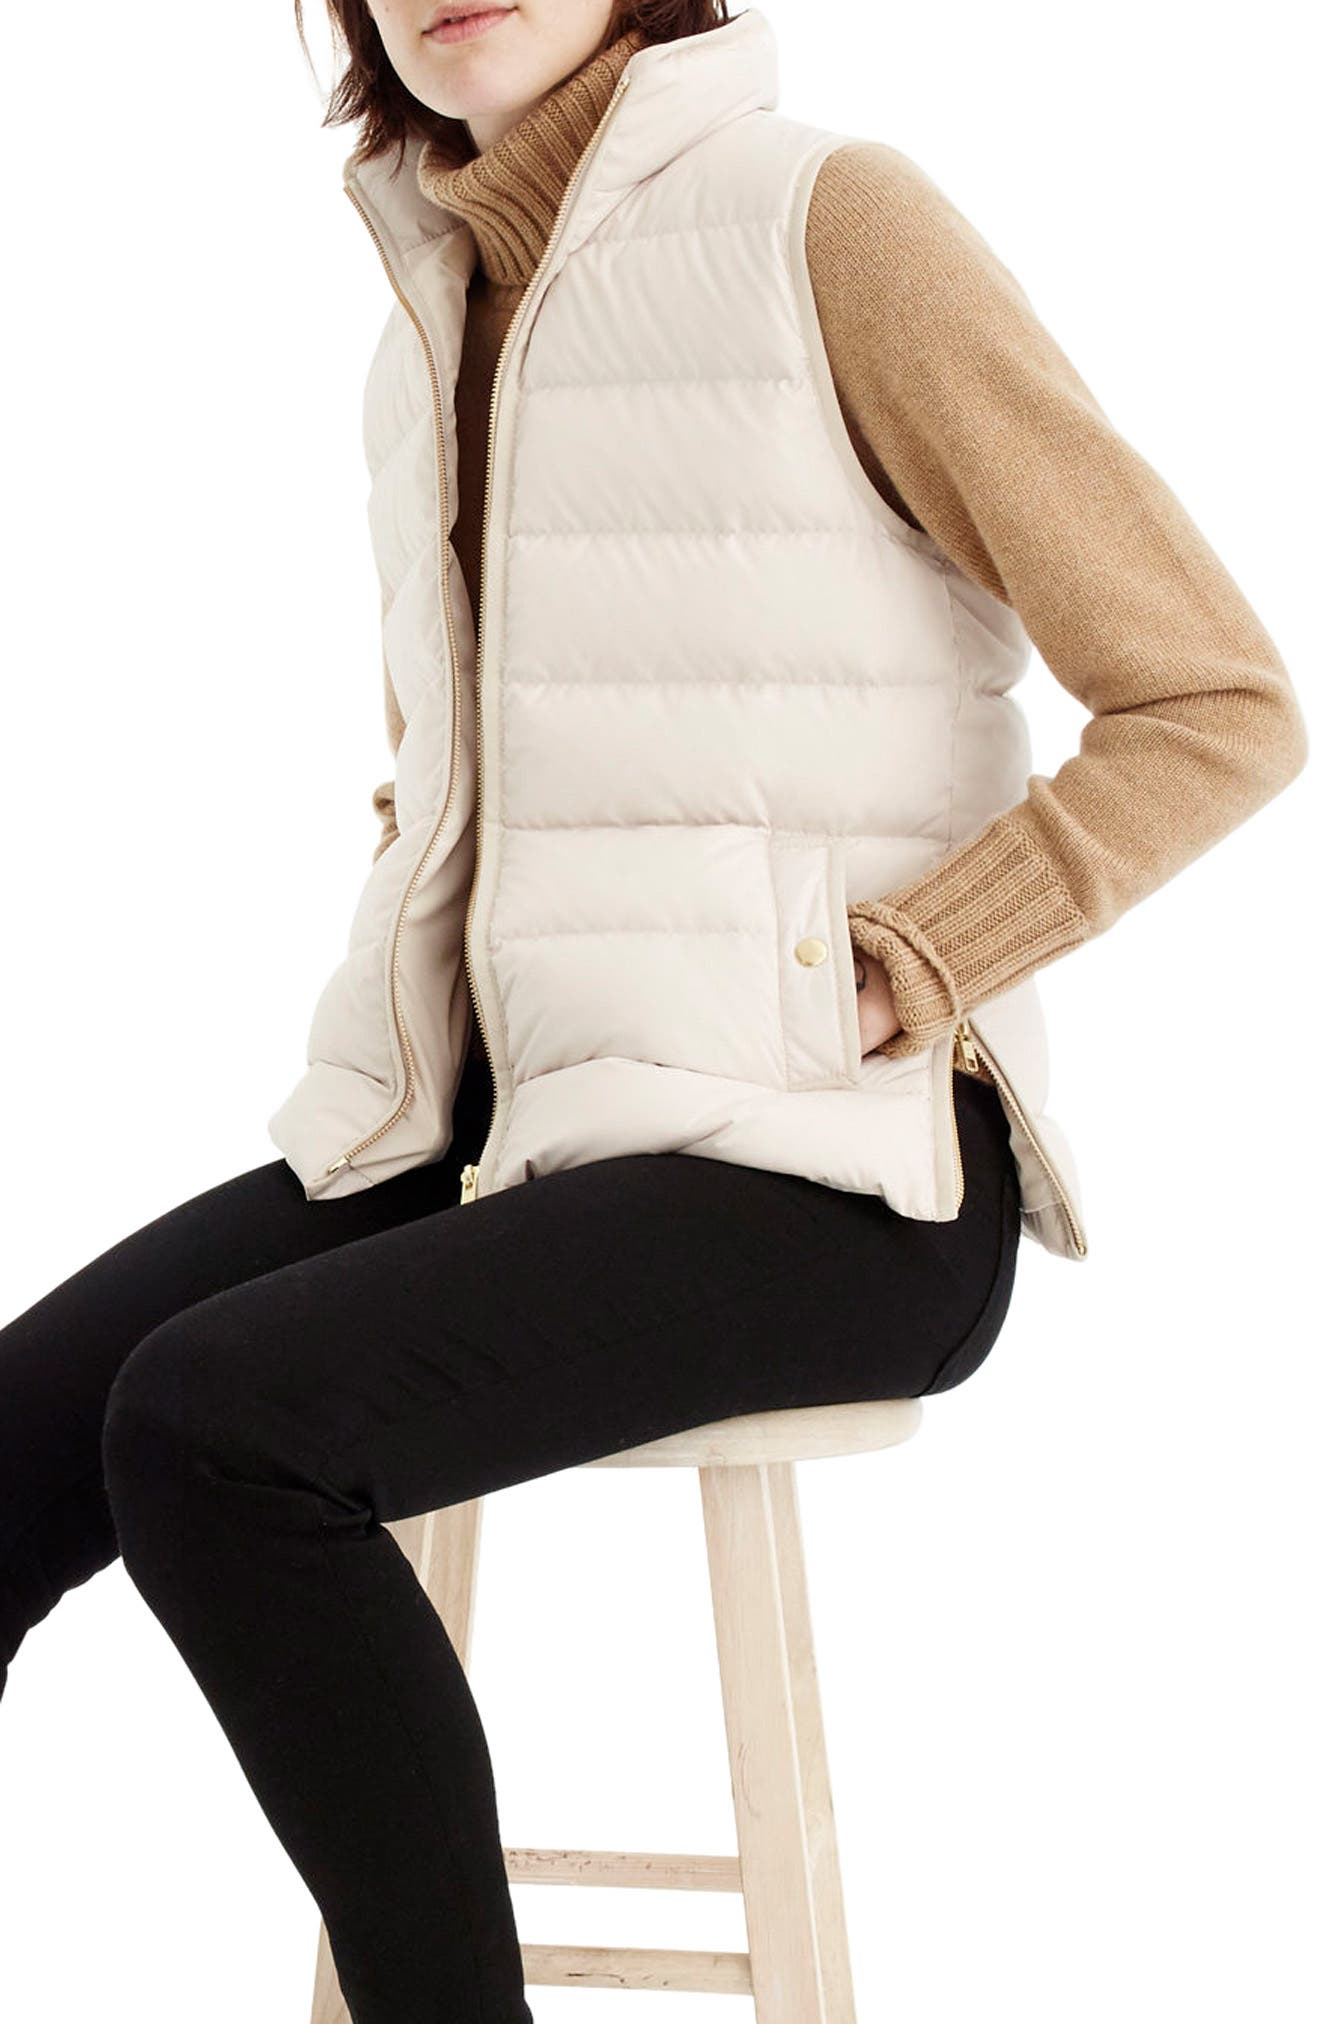 Alternate Image 1 Selected - J.Crew Anthem Down & Feather Fill Puffer Vest (Regular & Petite)